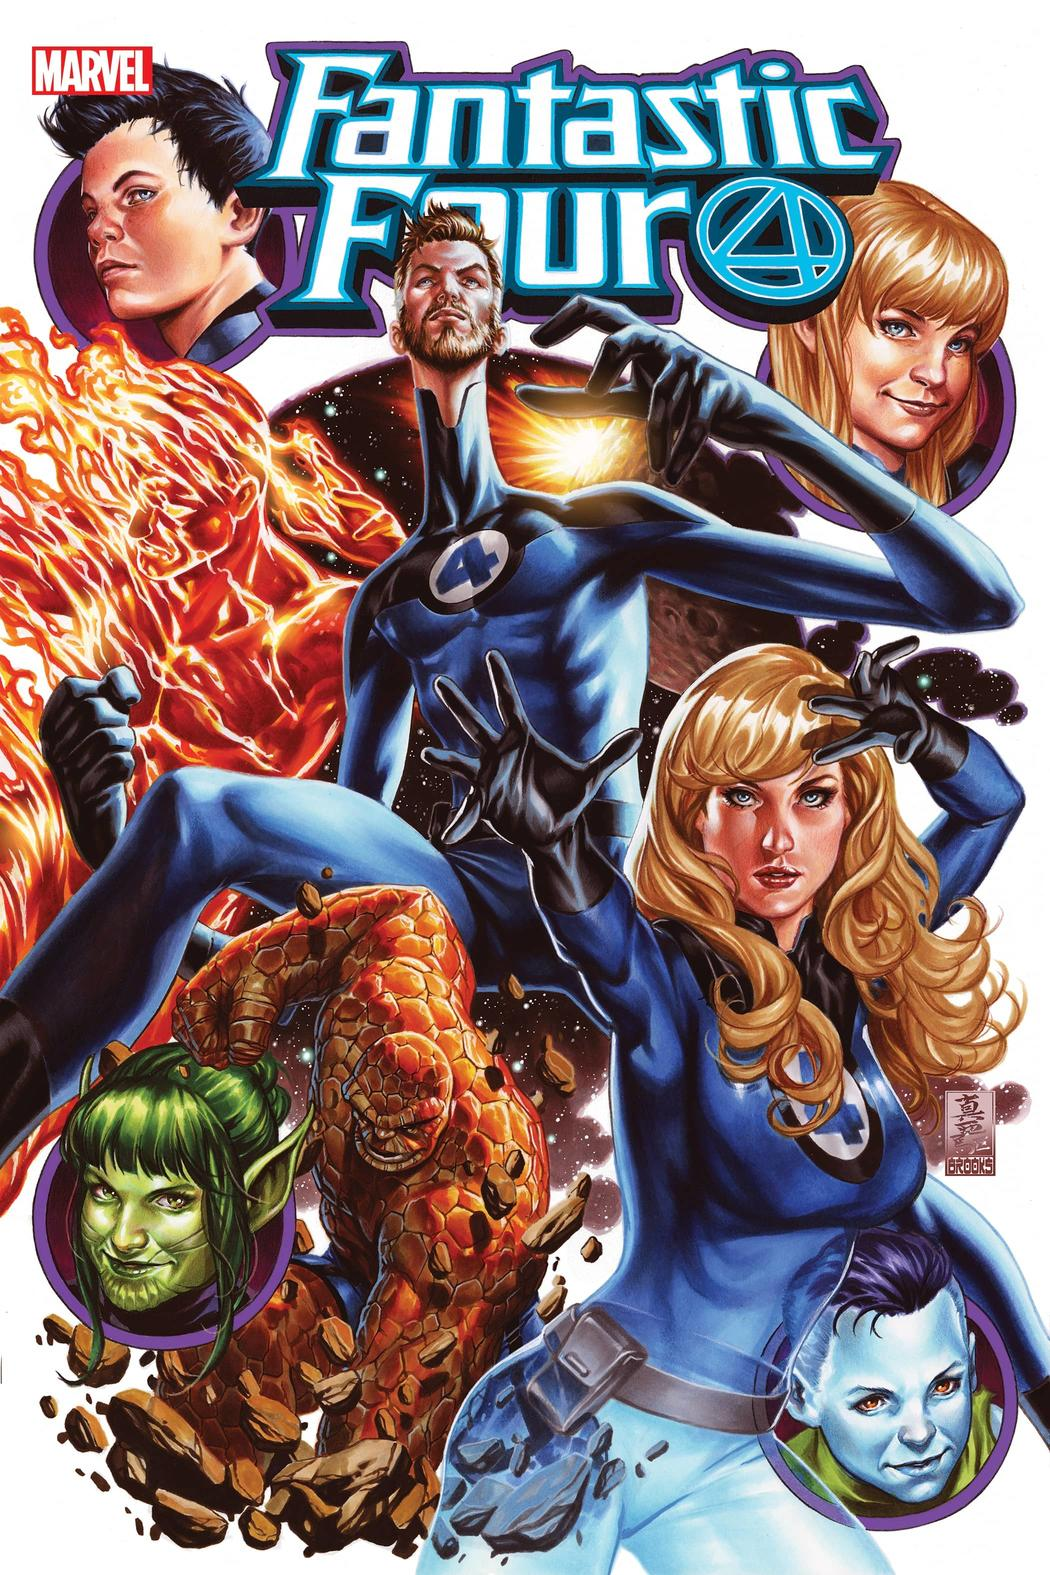 FANTASTIC FOUR #25 WRITTEN BY DAN SLOTT, ART BY R.B. SILVA, COVER BY MARK BROOKS